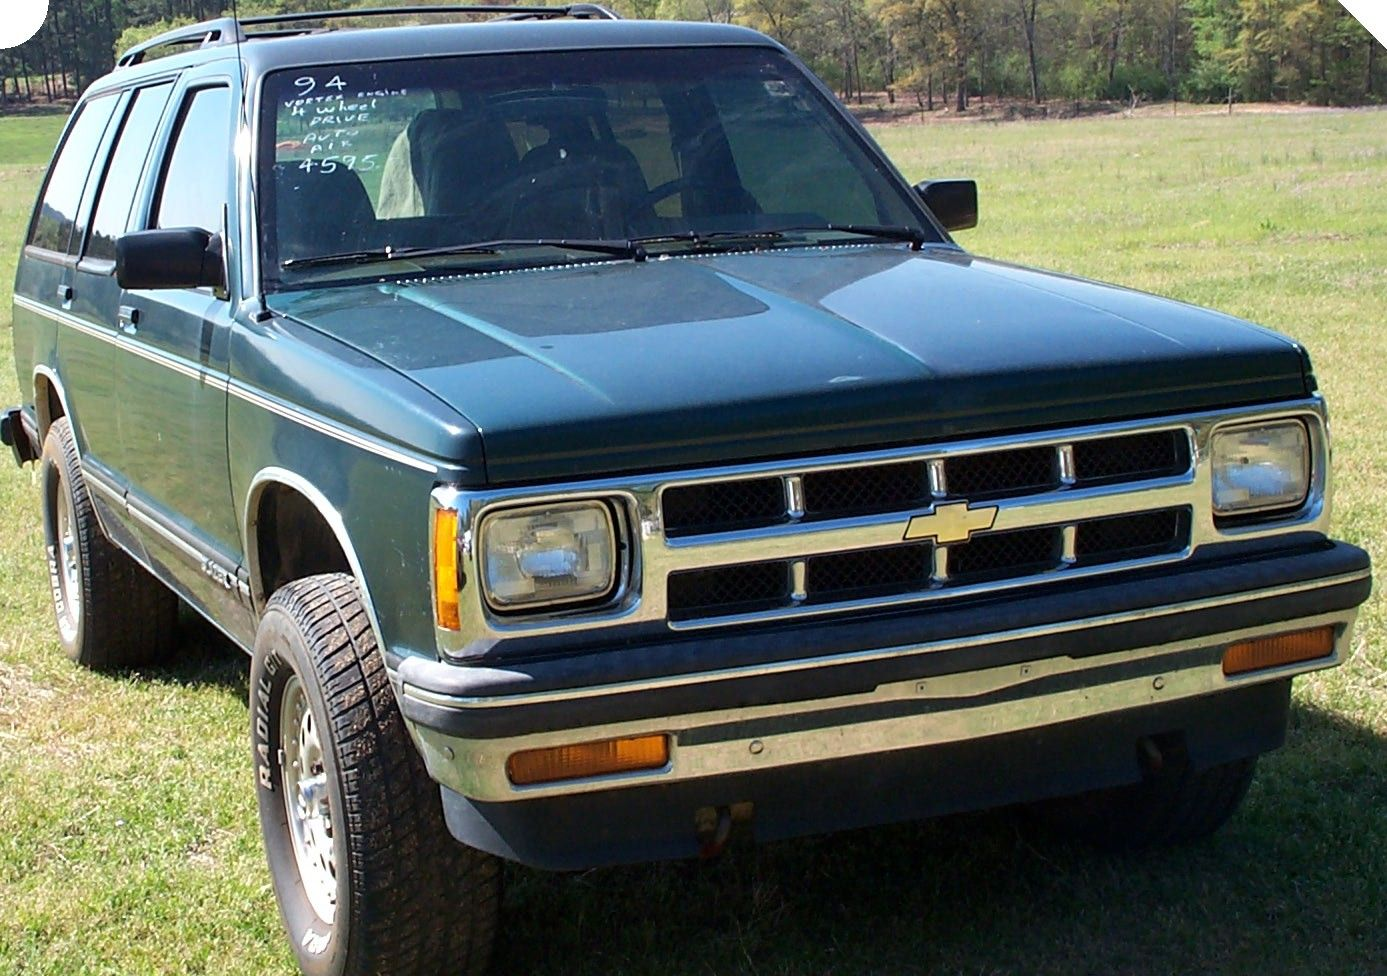 My 13th car 1994 chevrolet blazer s10 with leather seats my 13th car 1994 chevrolet blazer s10 with leather seats sciox Gallery